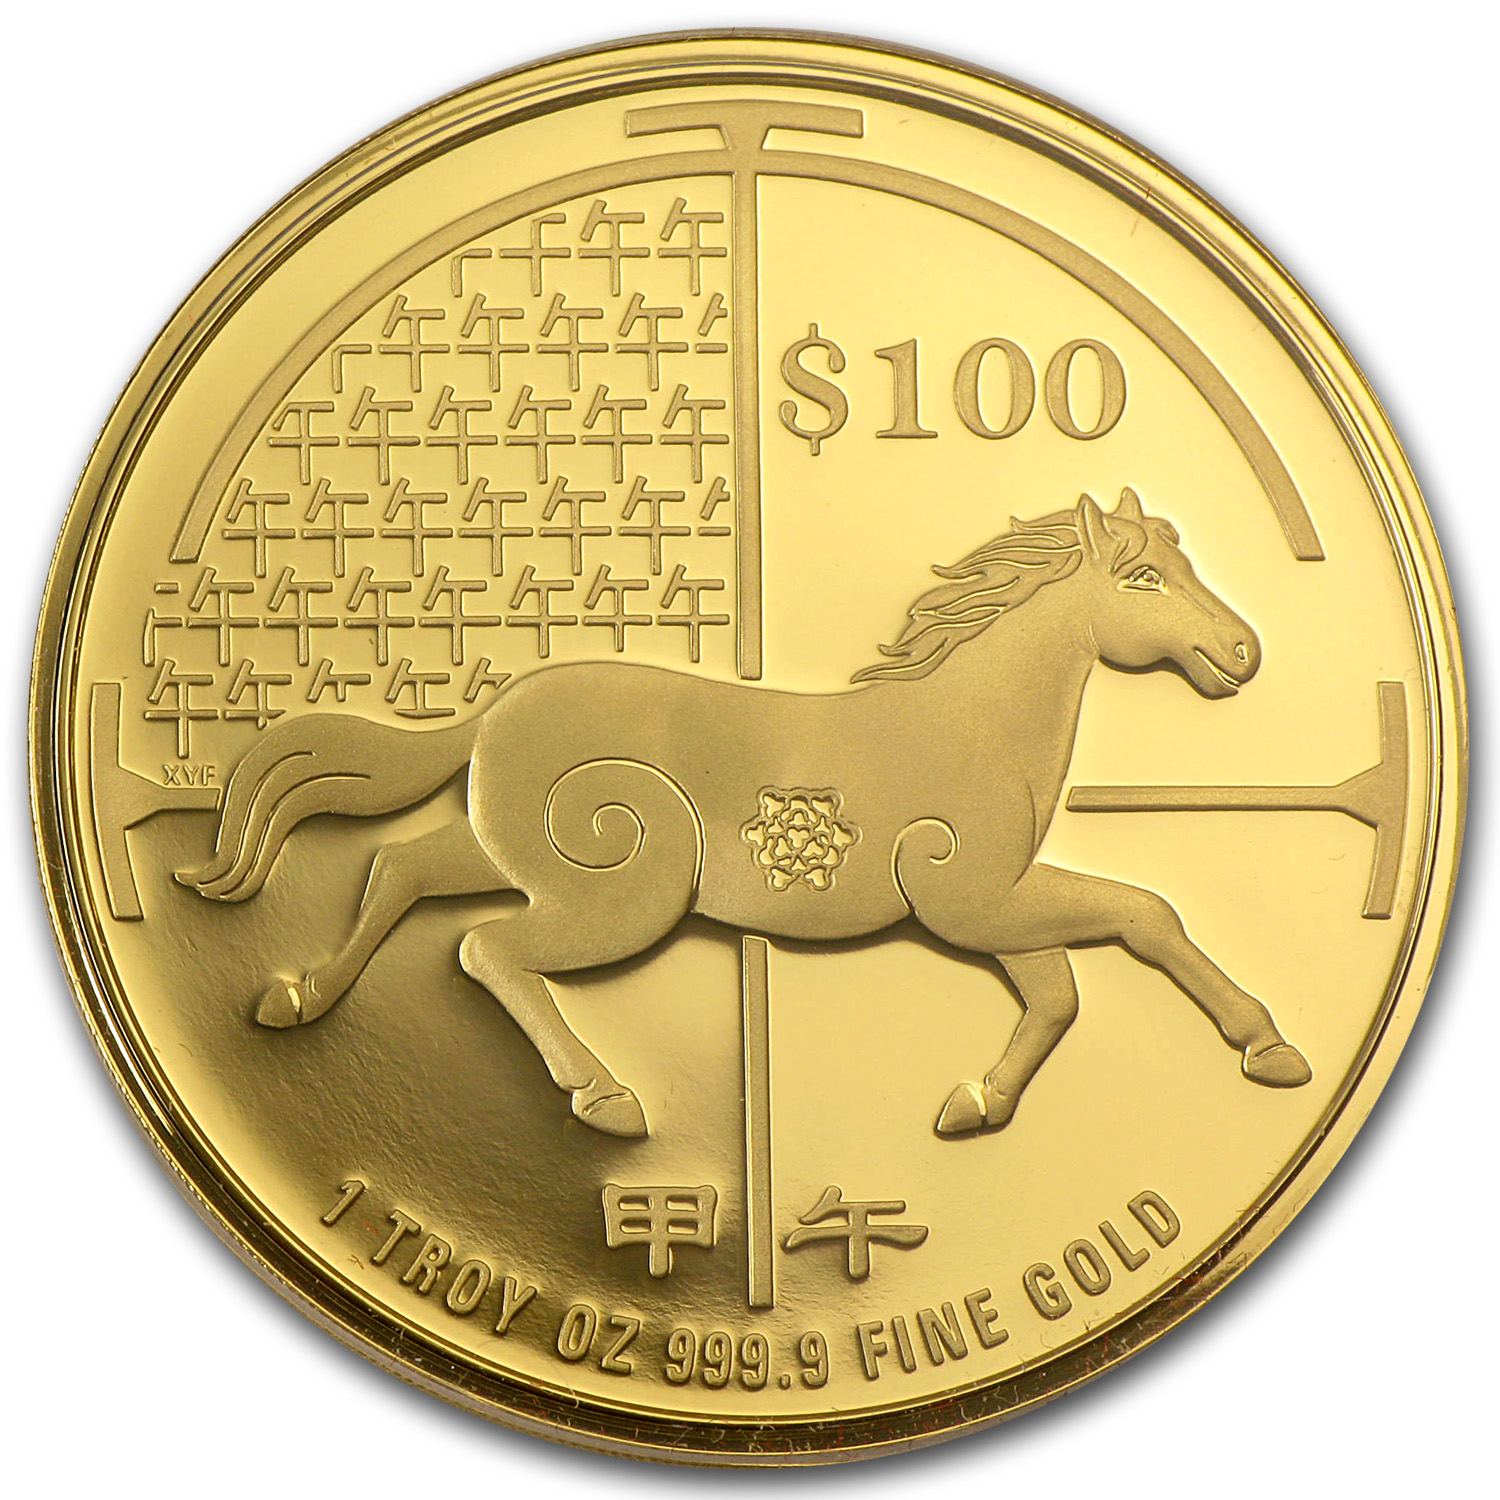 2014 Singapore 1 oz Proof Gold Year of the Horse